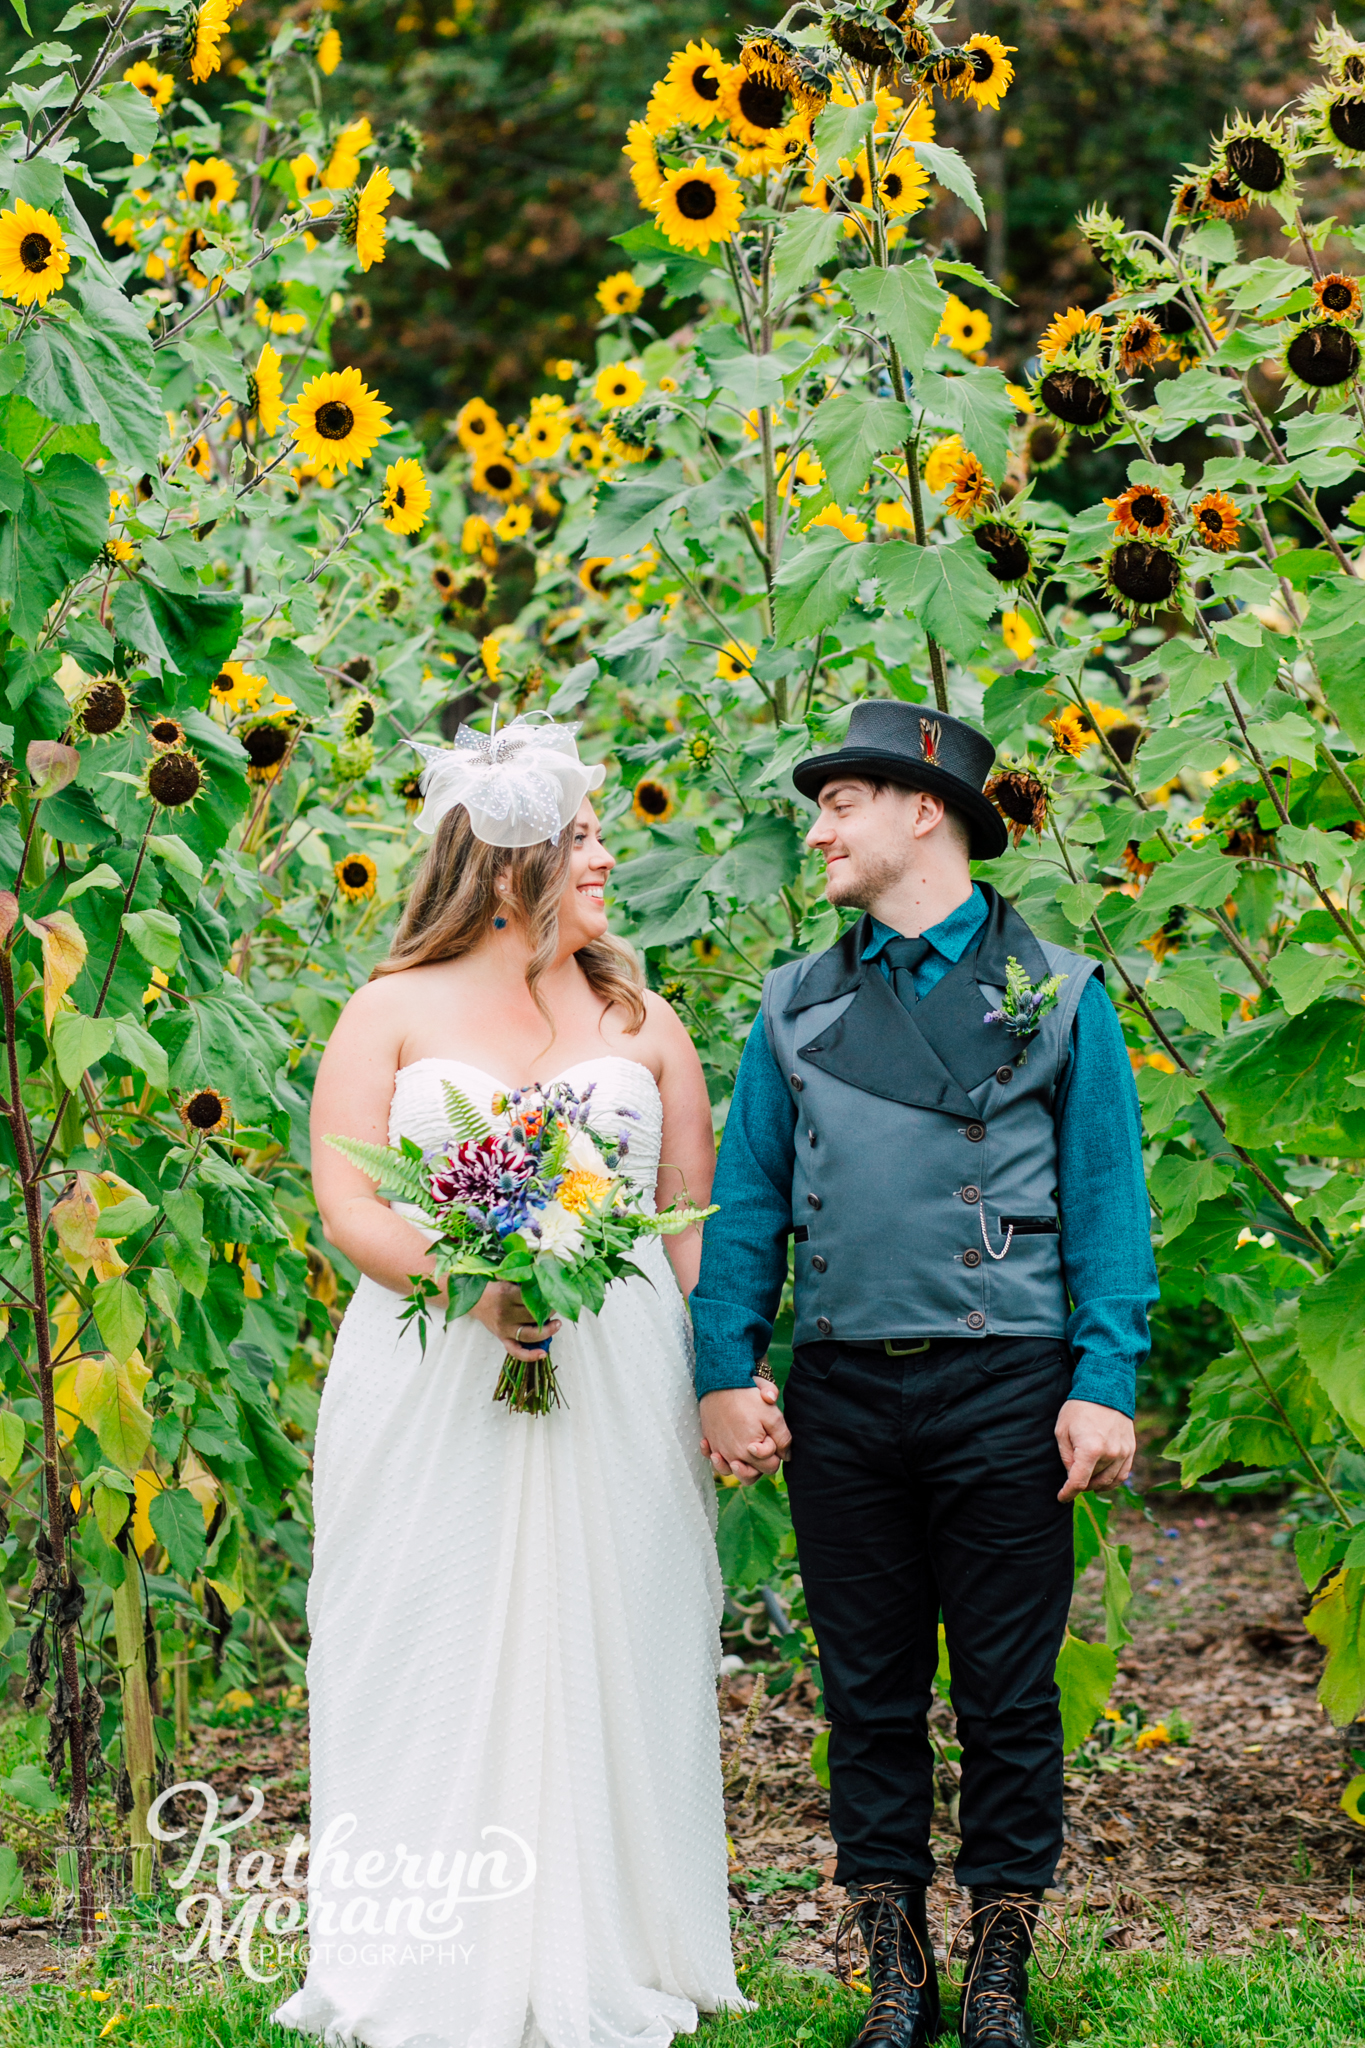 bellingham-wedding-photographer-katheryn-moran-emma-eric-2018-361.jpg